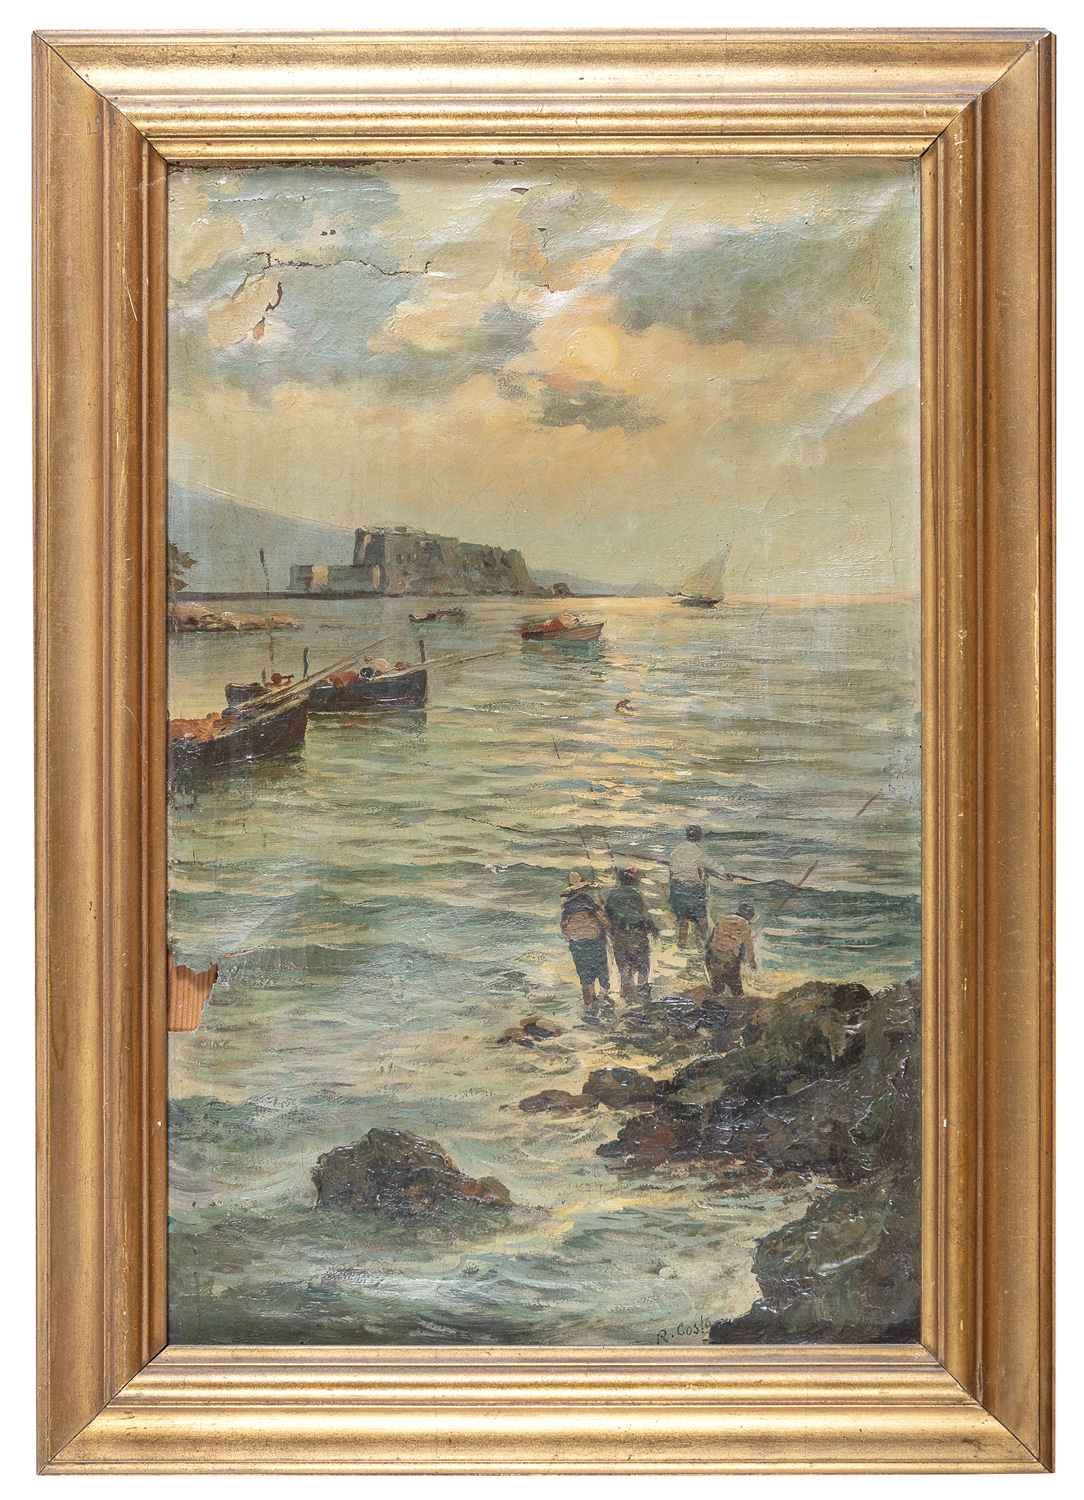 NEAPOLITAN OIL PAINTING EARLY 20TH CENTURY